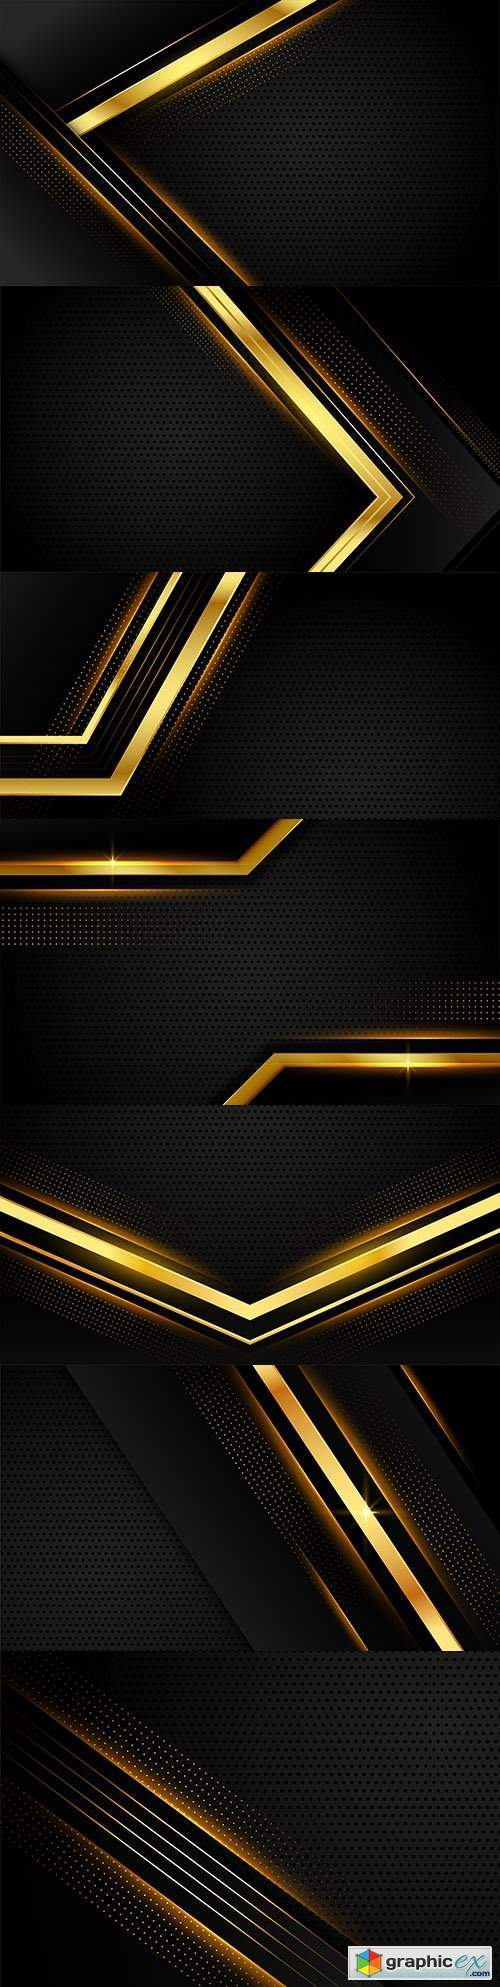 Shiny gold geometric lines black carbon background